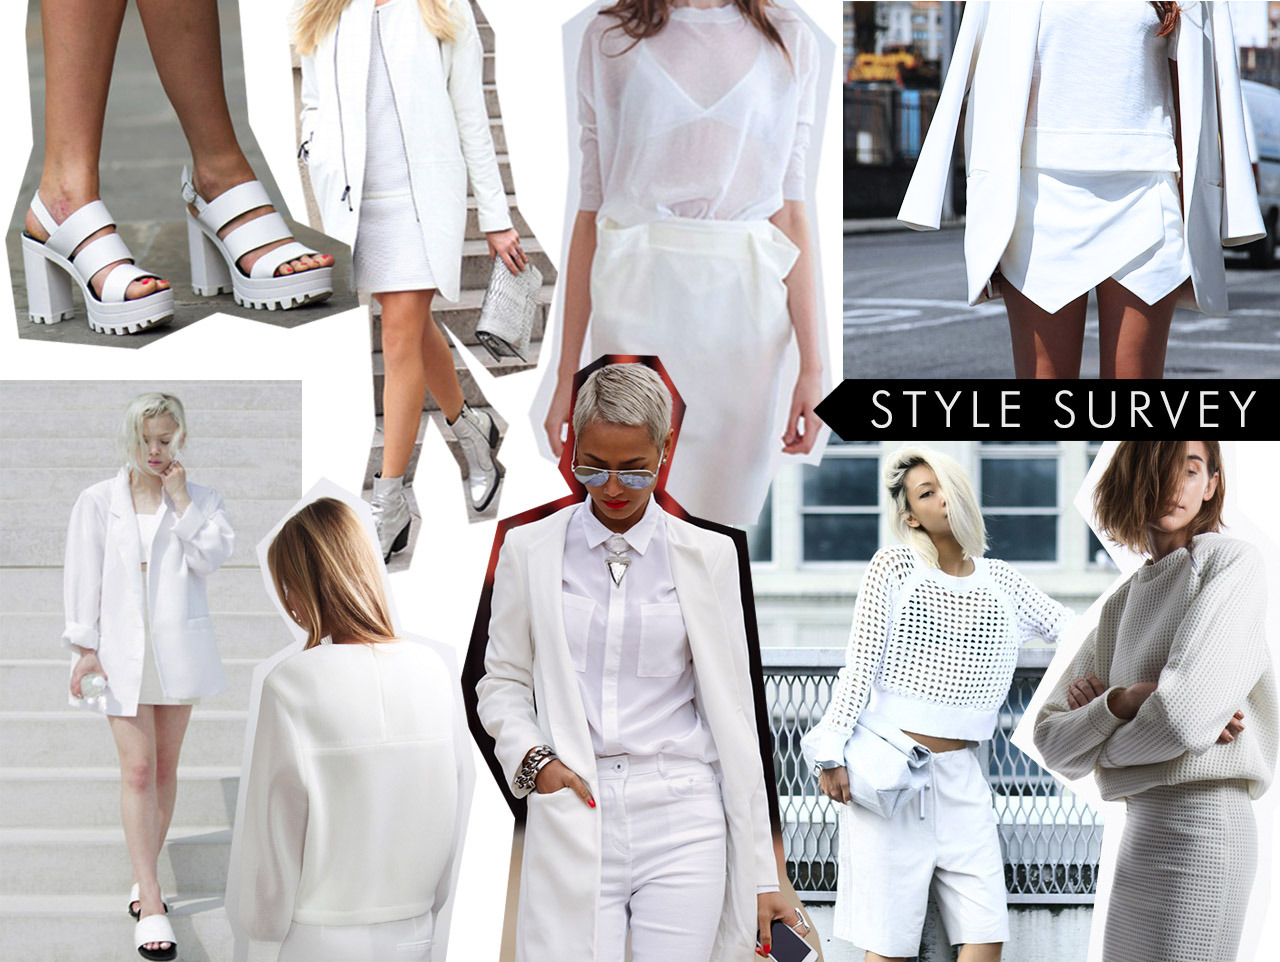 STYLE SURVEY White is the new black, just ask some of our favorite street style stars. The monochrome trend has been popular for quite some time, but the ease and simplicity of a neutral shade over bright and colorful hues is refreshing. All this look needs is a white statement necklace and we've hit the heavens of trend-land.